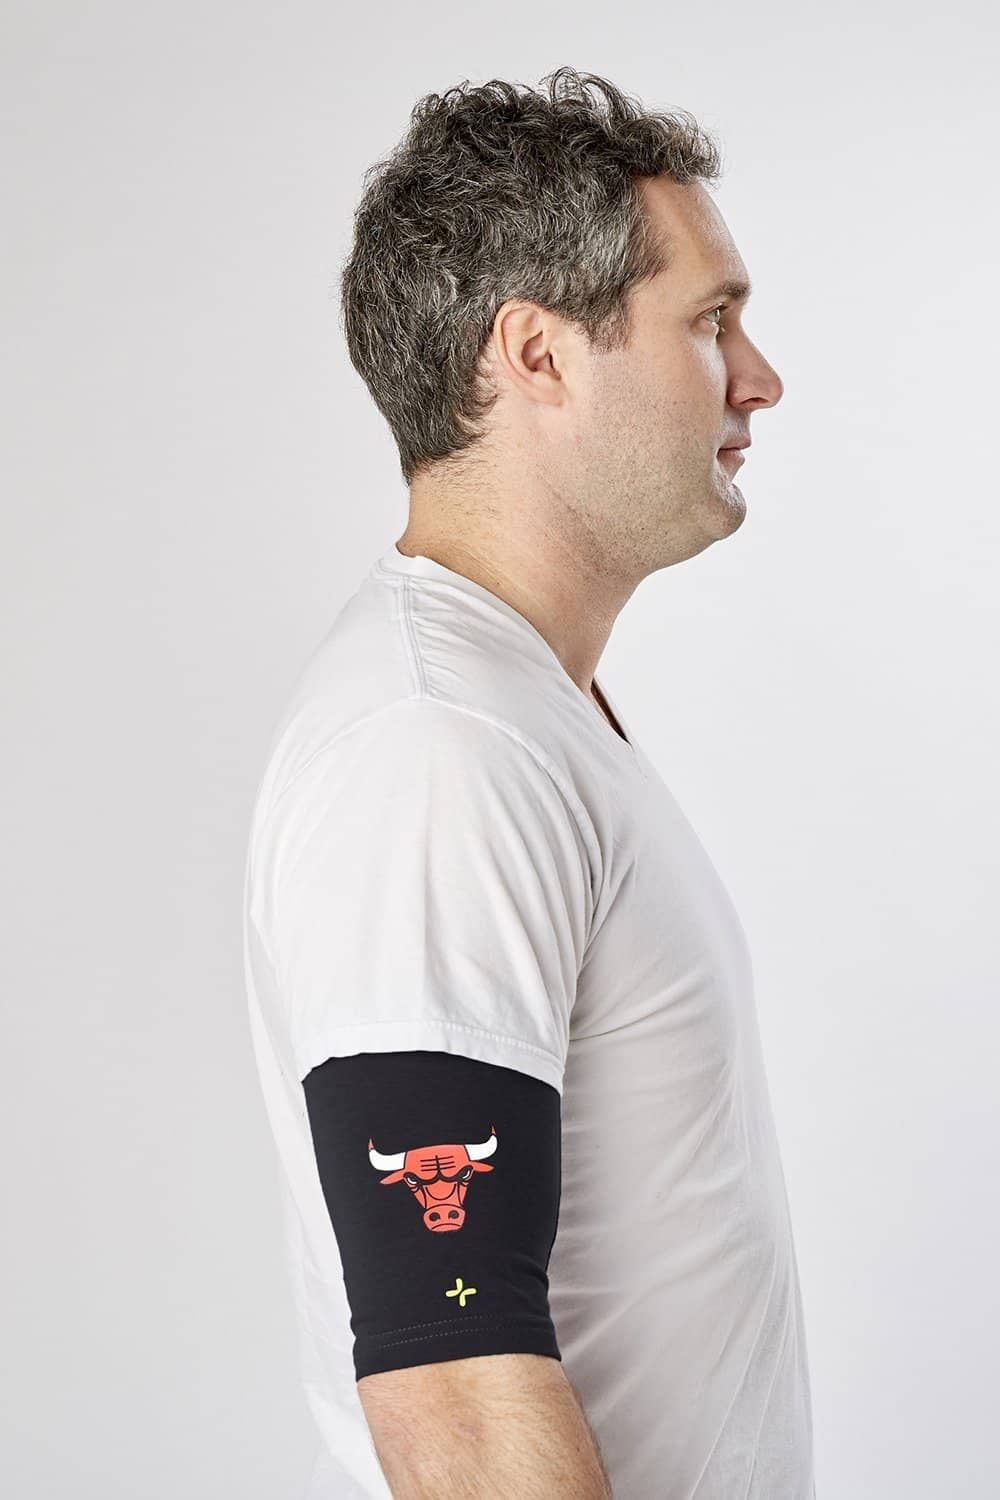 Chicago Bulls PICC Line Cover - Care+Wear